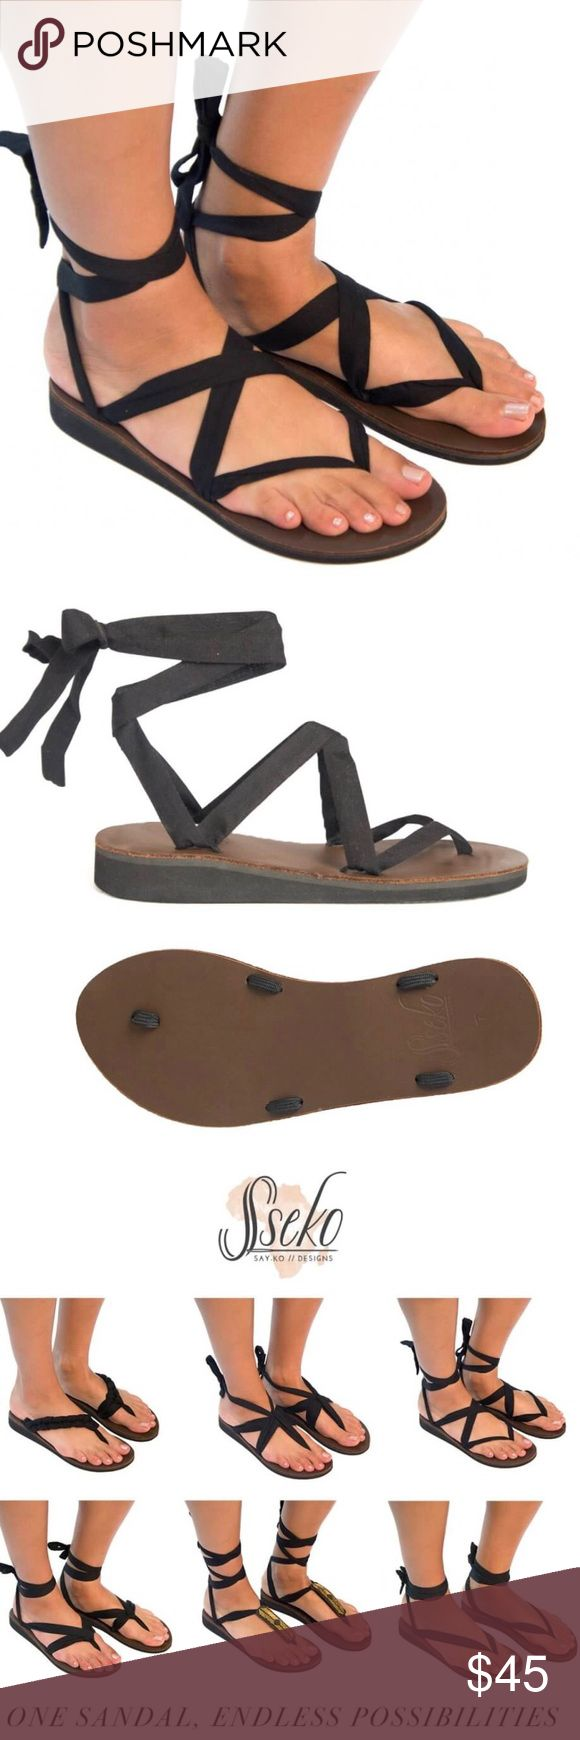 Brown Leather Ribbon Sandals Our Brown Leather Ribbon Sandals include our classic brown leather sandal base and black cotton ribbons that can be tied & styled in countless ways! Our brown leather sandal bases are perfect for warm-weather adventuring, and they're sure to pair nicely with any ensemble! Handcrafted from genuine leather, the sandal also features a rubber outsole and a layer of cushioning foam for all-day comfort. Tie the black ribbons in over 50 styles, or change your straps out…